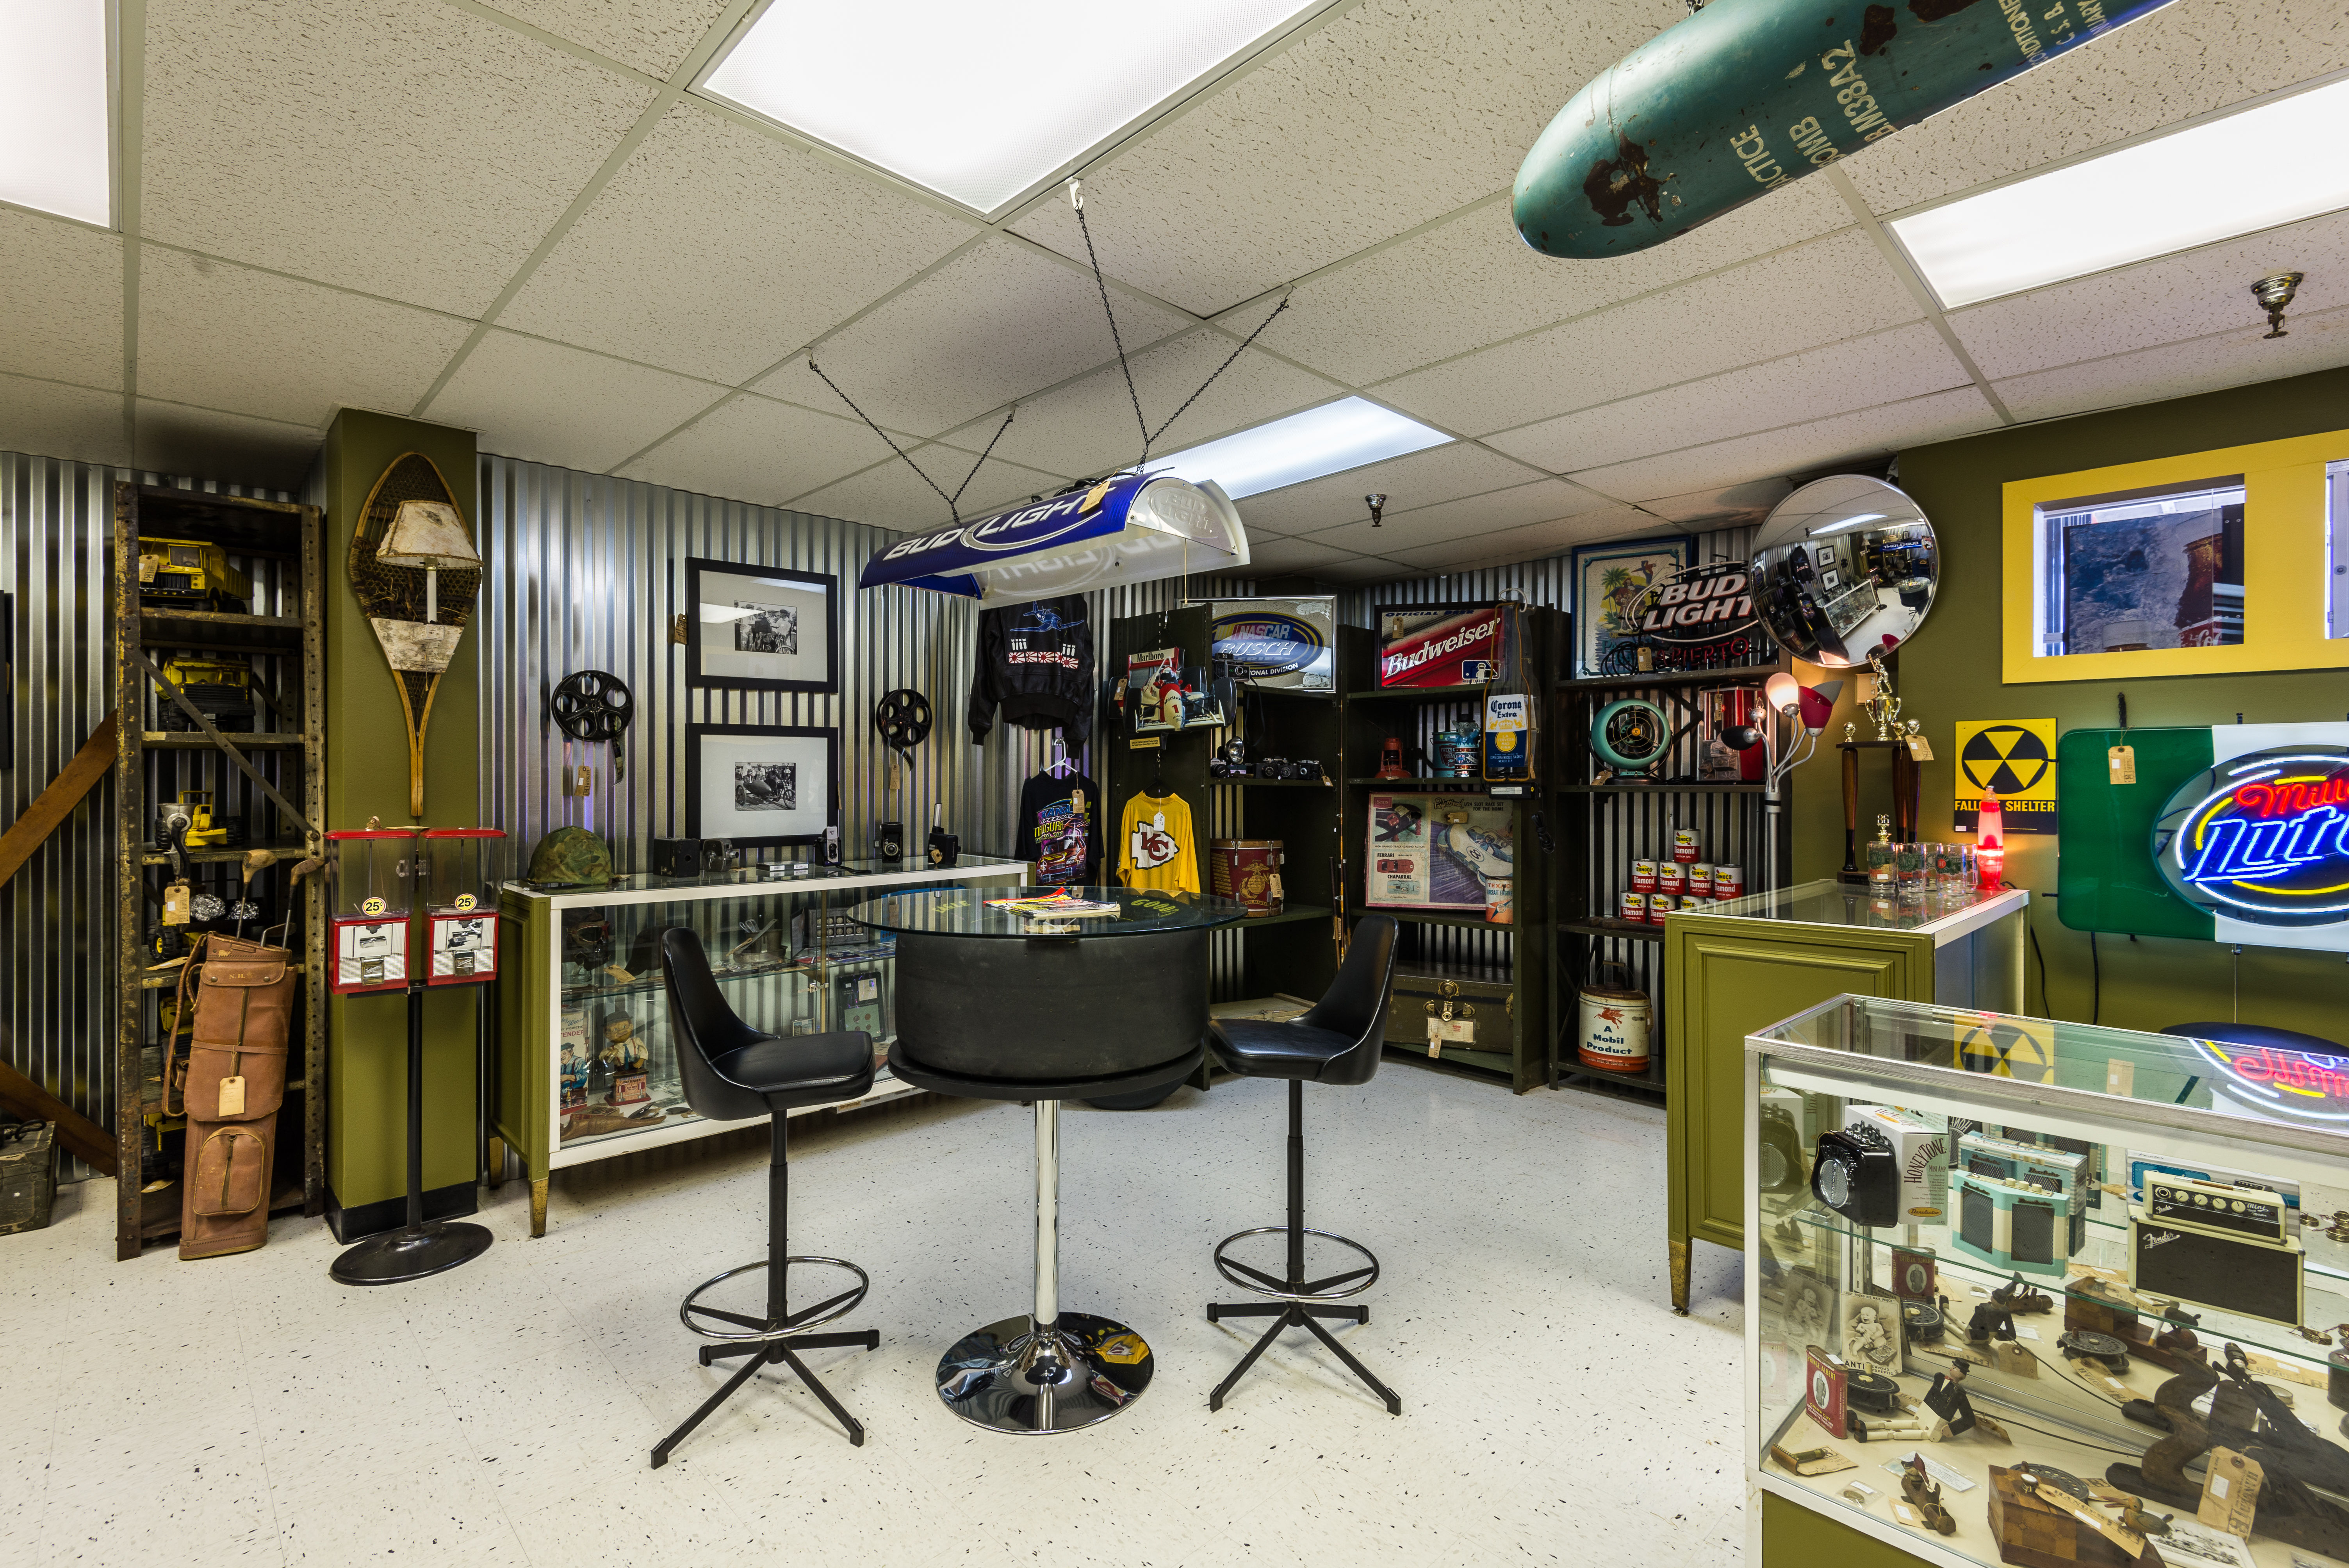 Man Cave Store Langley : Dsc sols jewelry pawn shop kansas city